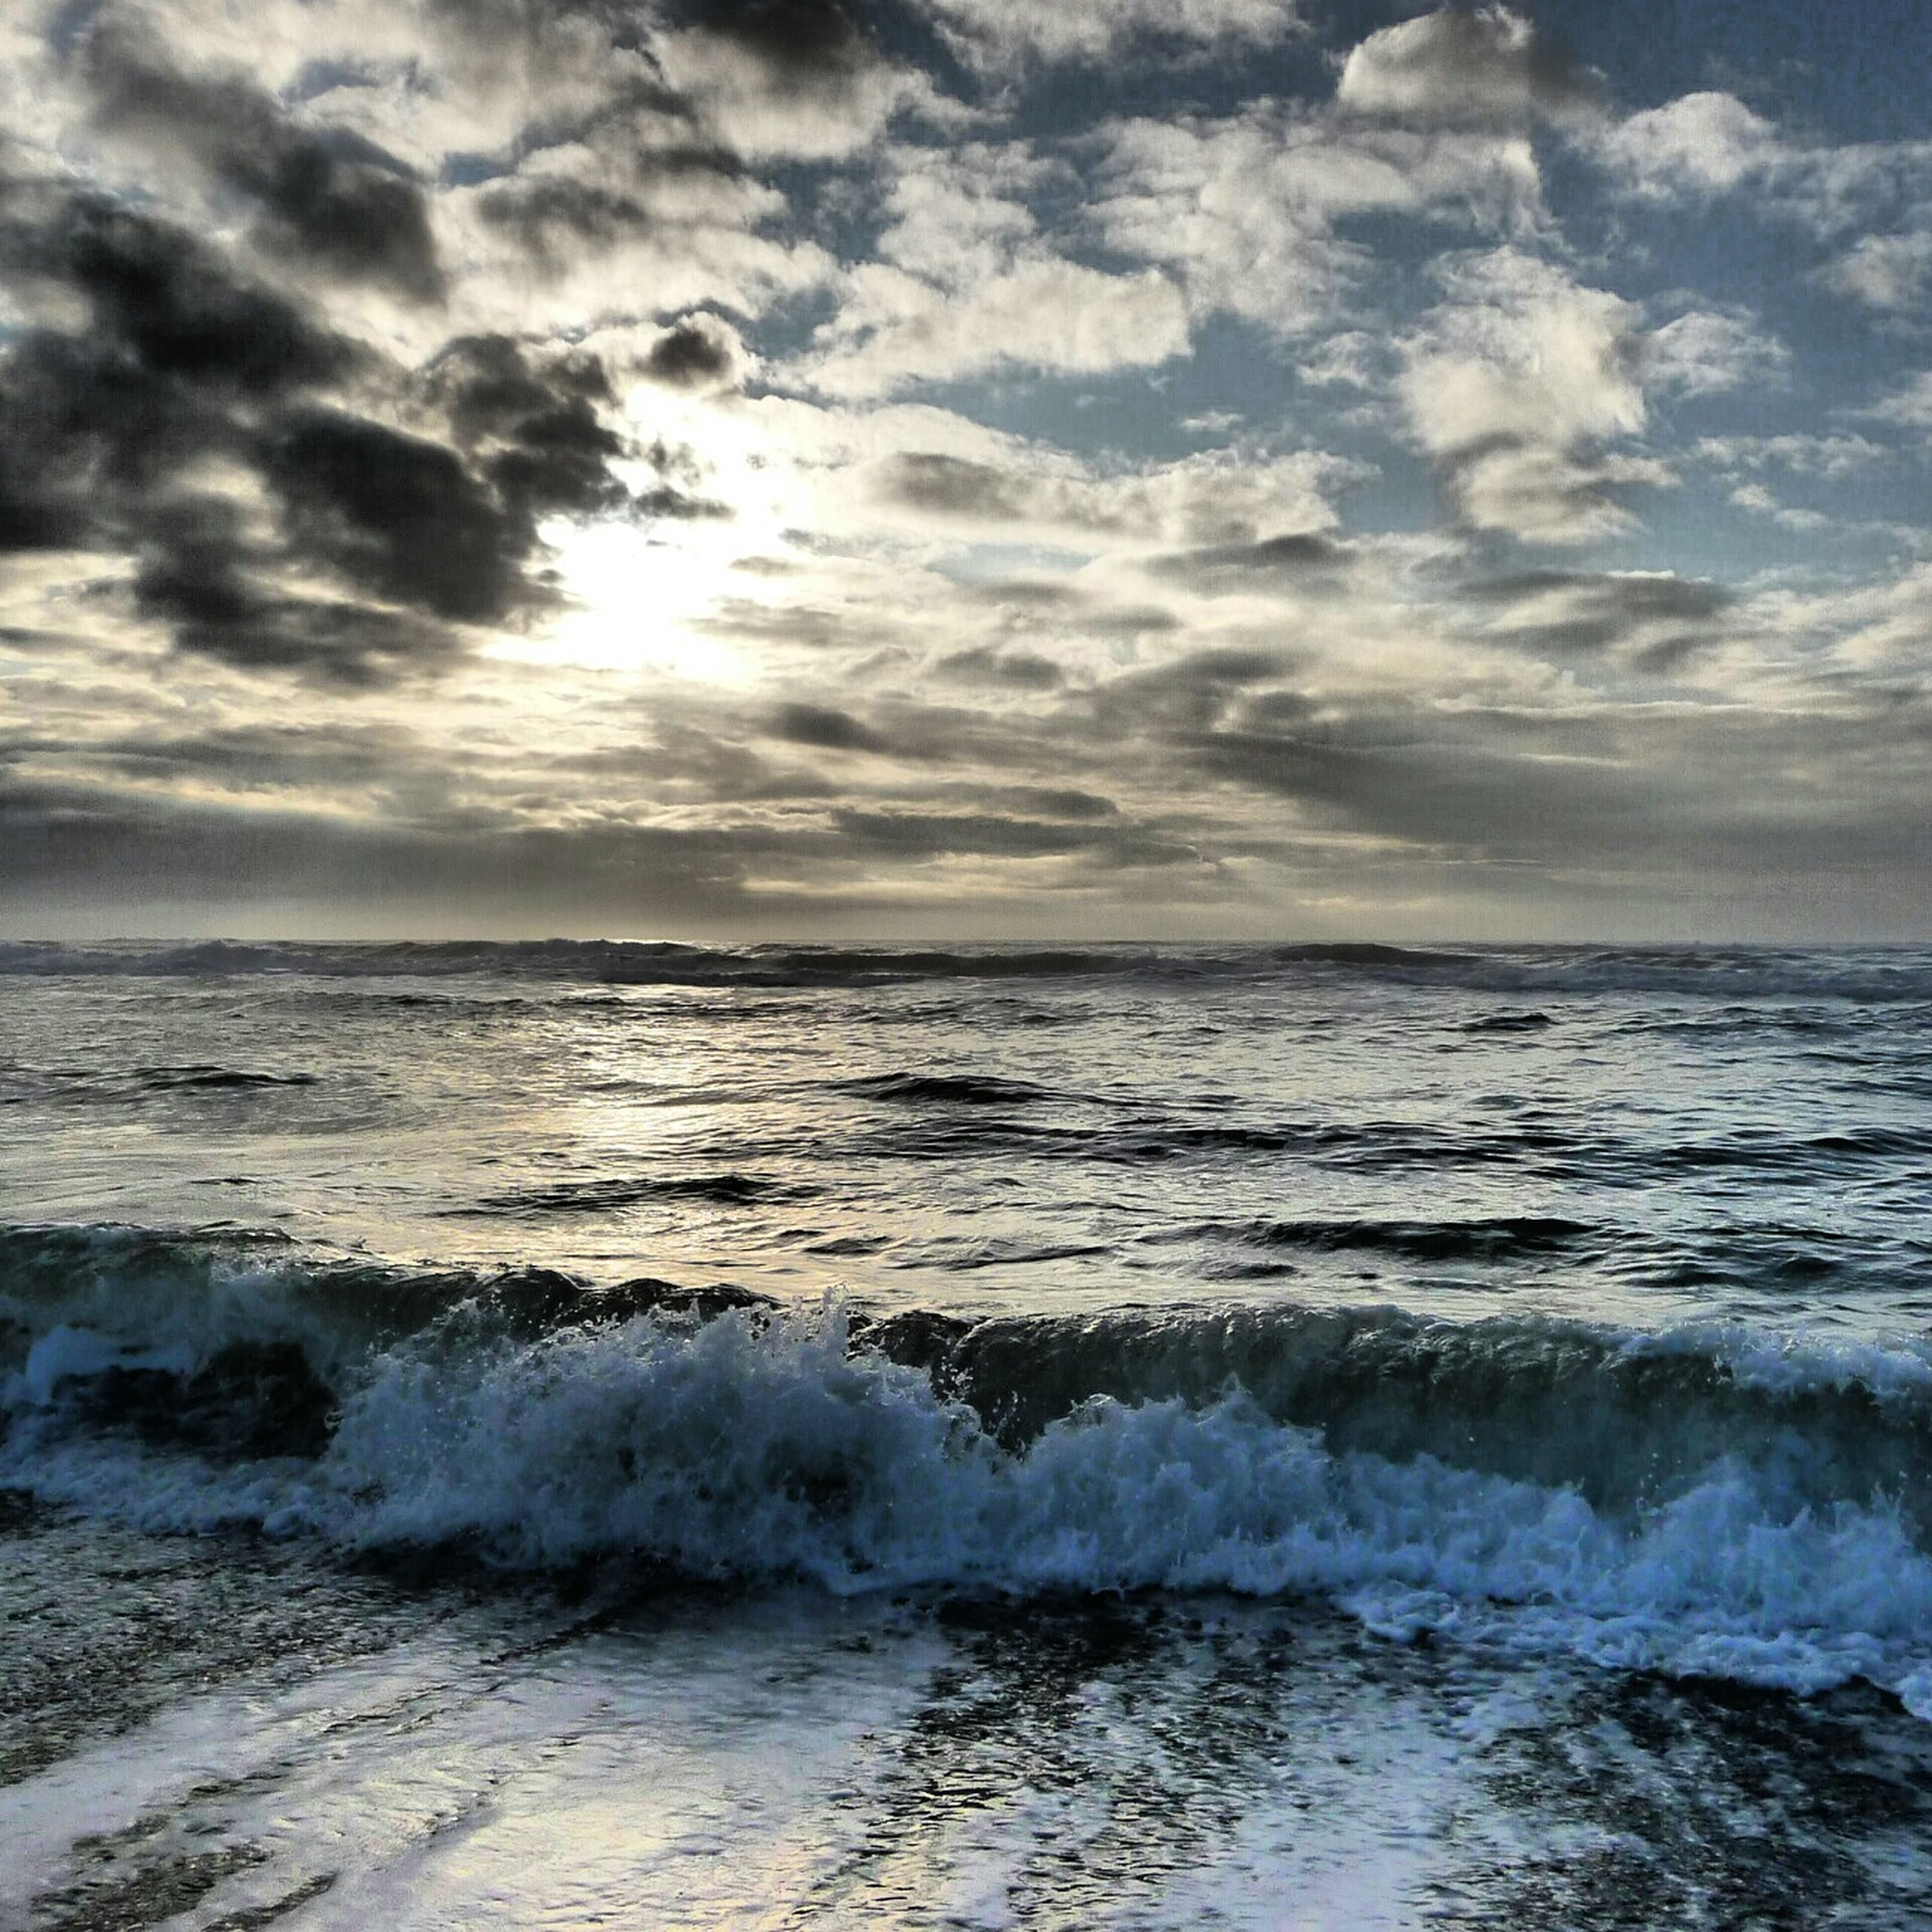 water, sea, sky, horizon over water, scenics, cloud - sky, beauty in nature, wave, tranquil scene, tranquility, beach, cloudy, nature, surf, shore, cloud, idyllic, weather, motion, outdoors